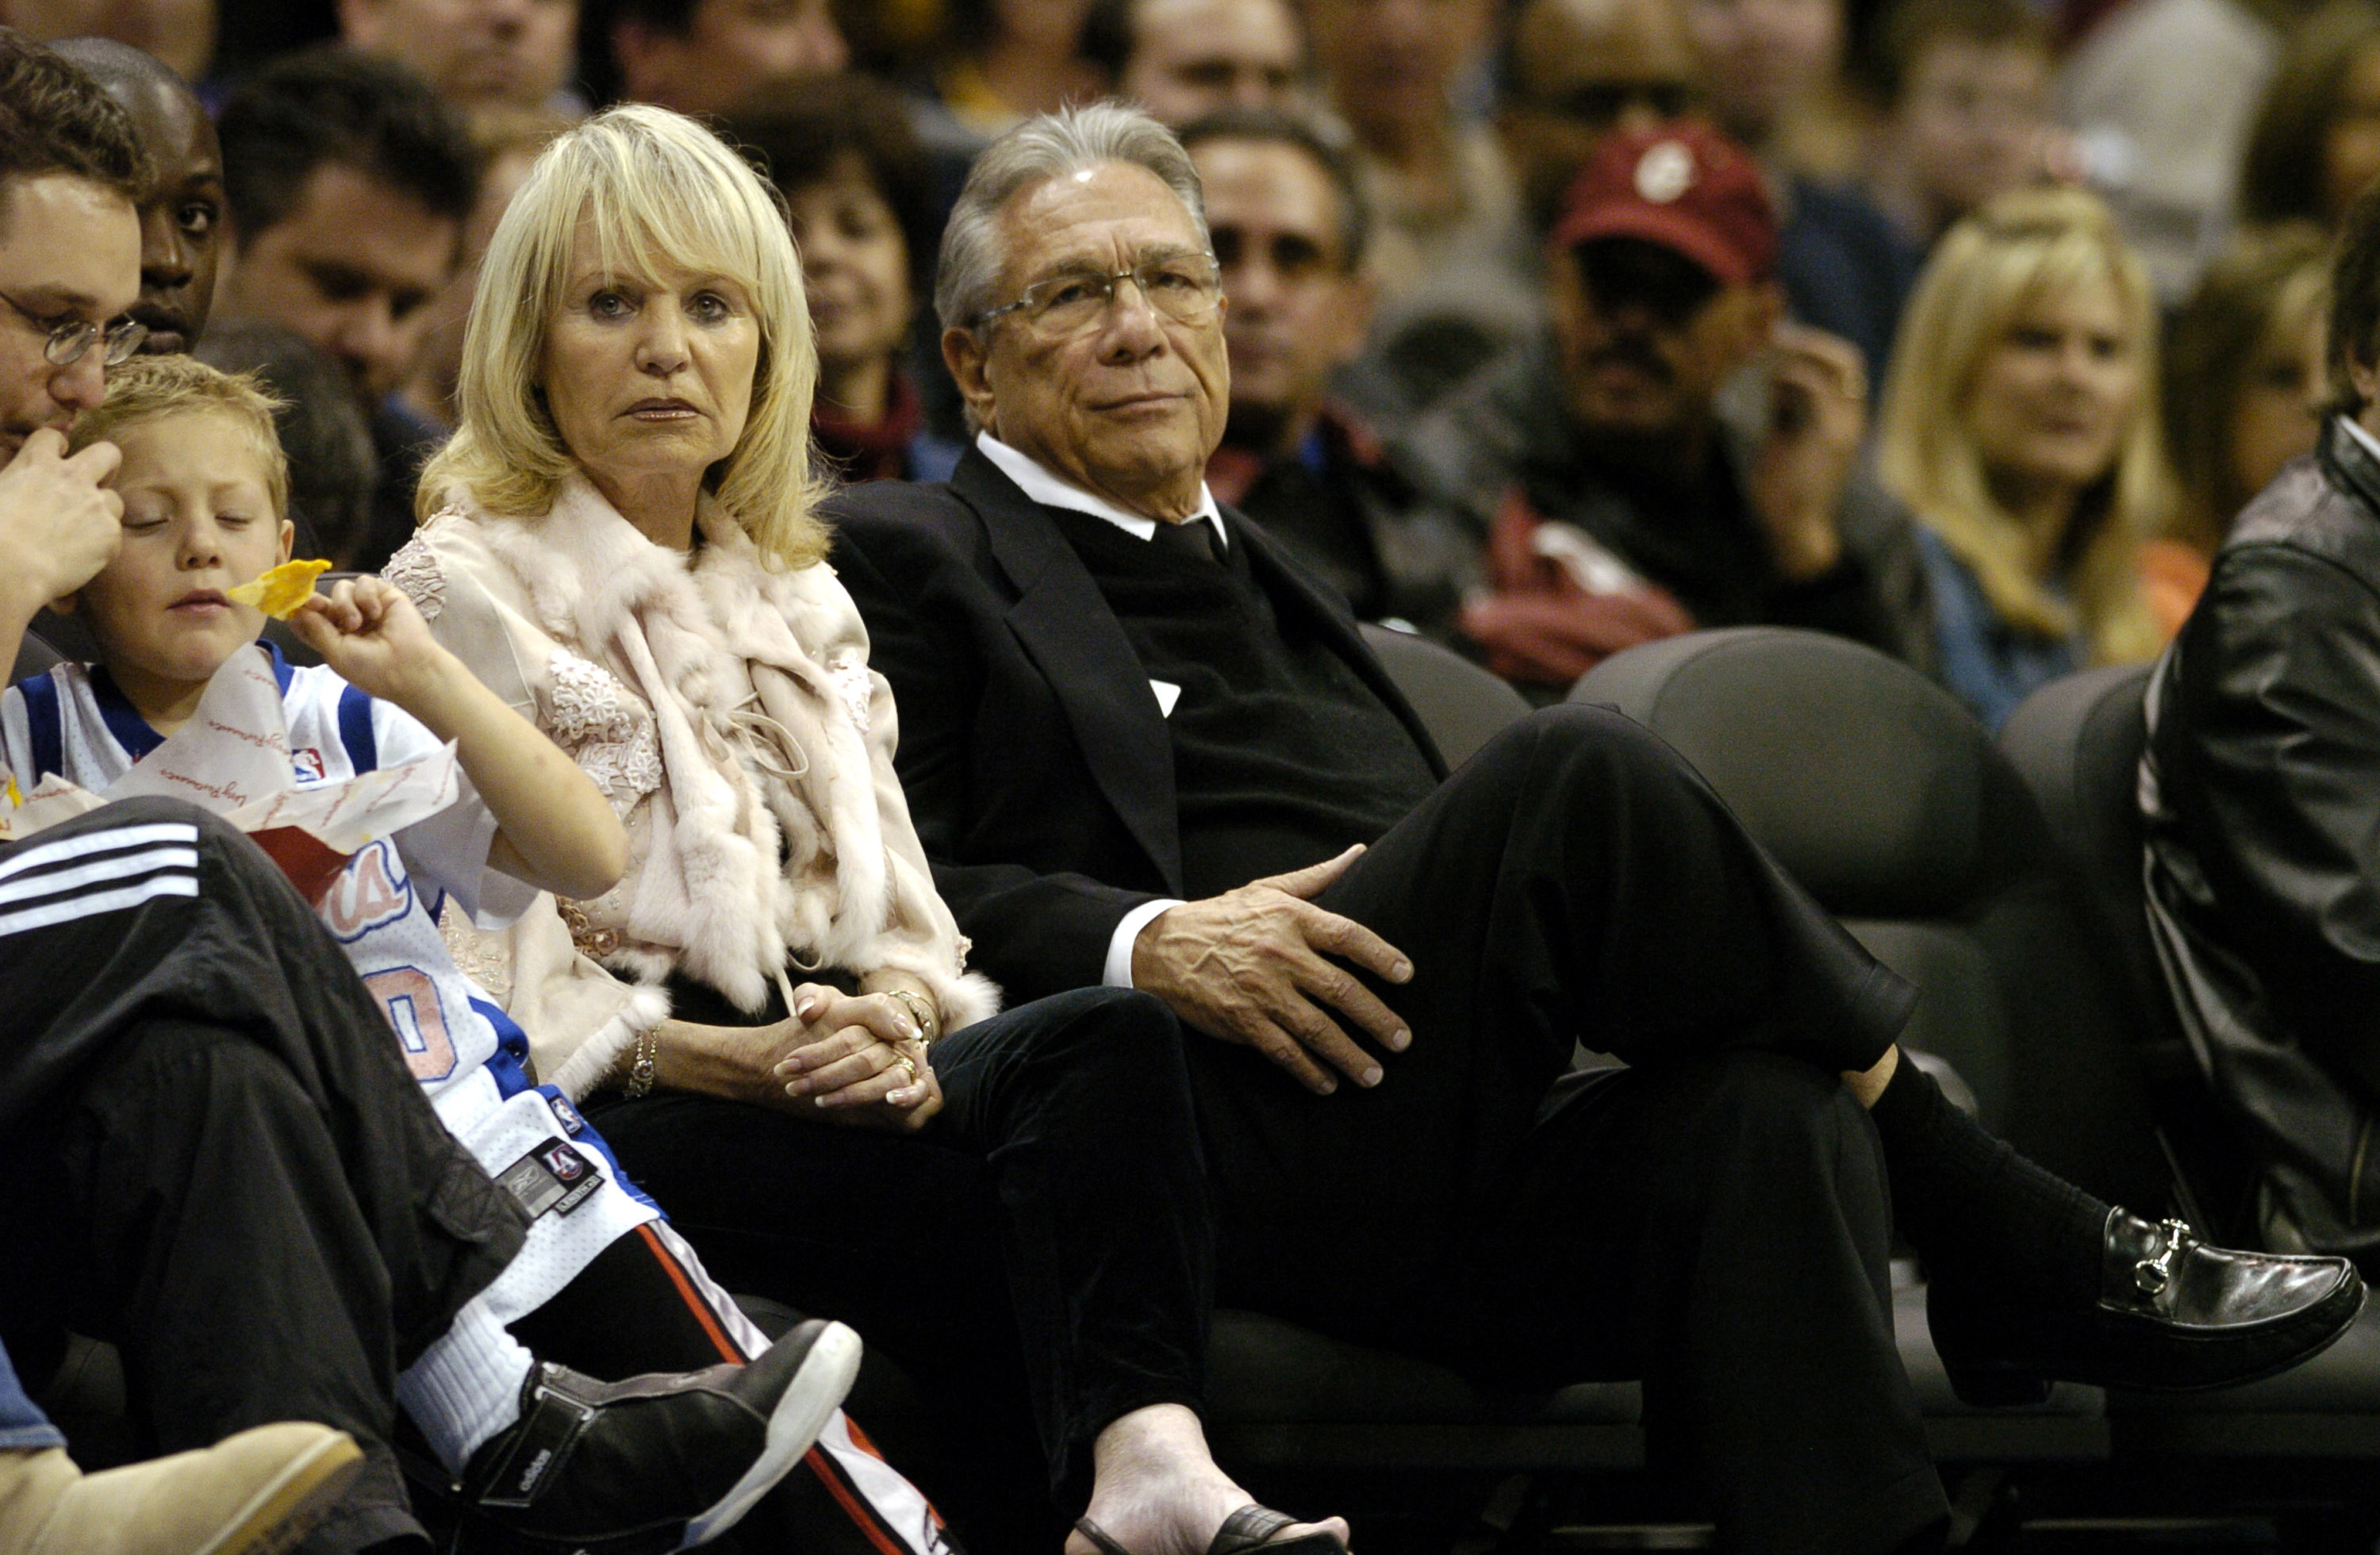 Los Angeles Clippers owner Donald Sterling and wife